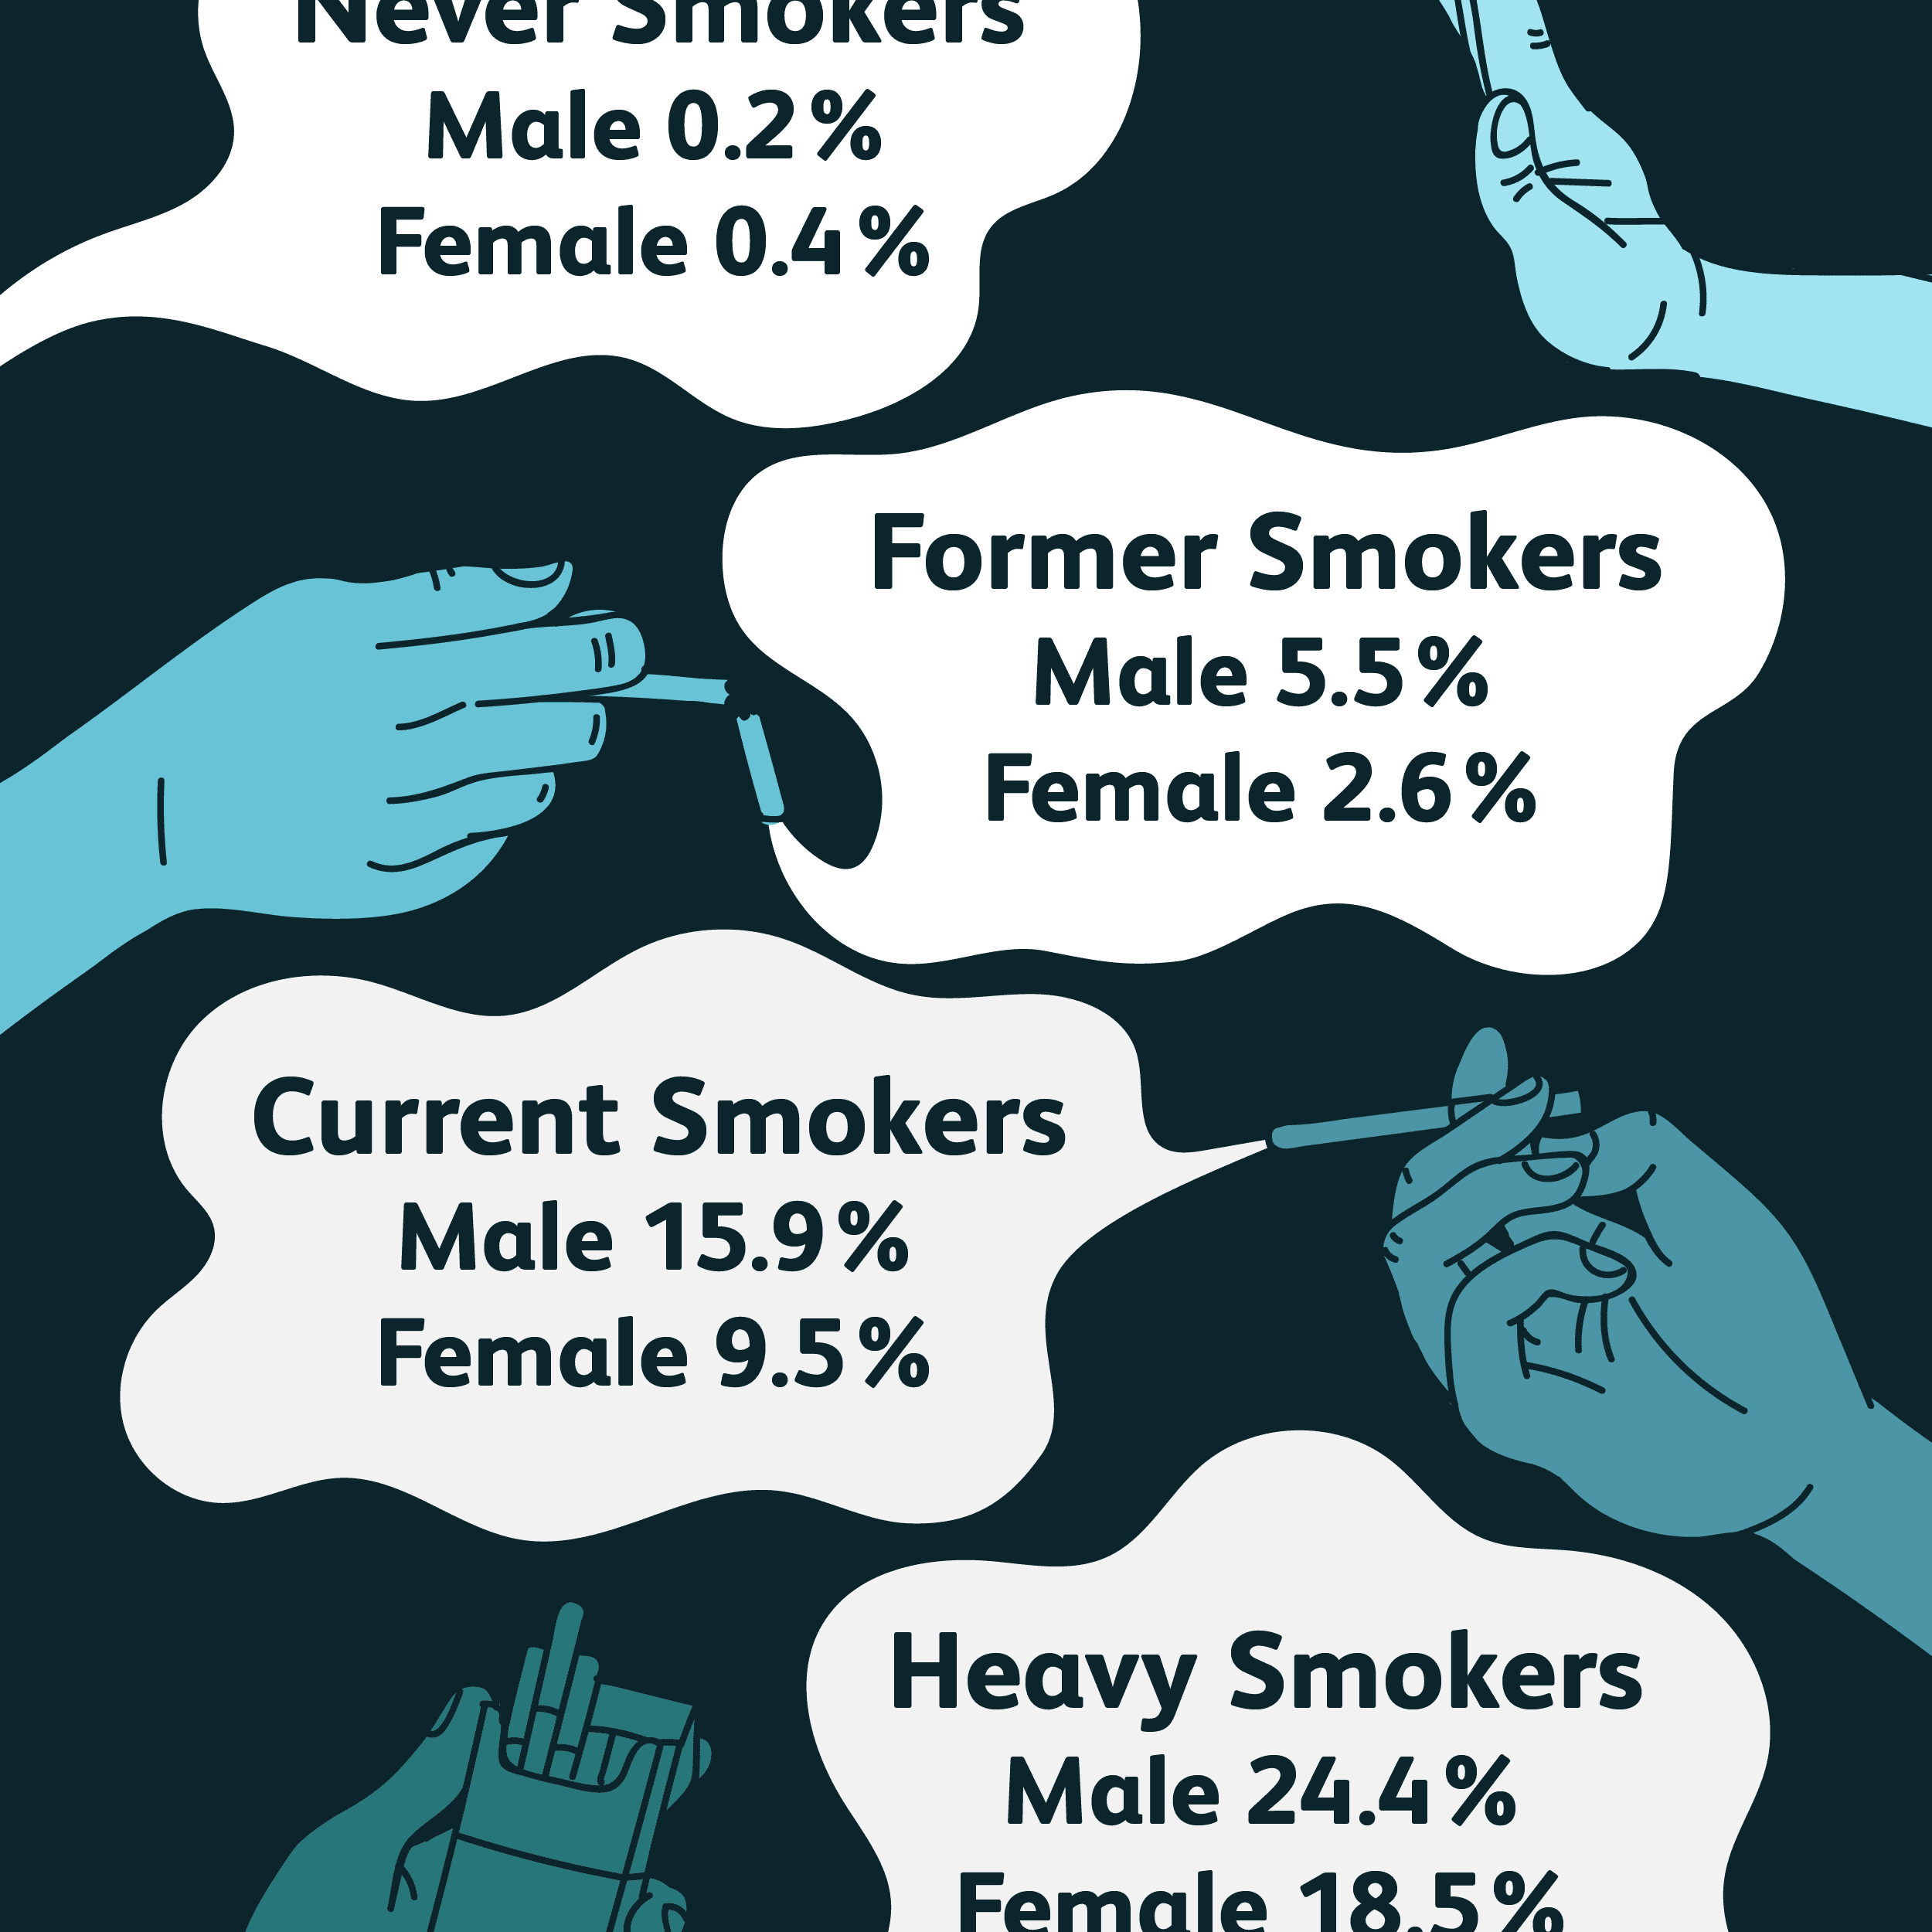 what percentage of smokers get lung cancer?